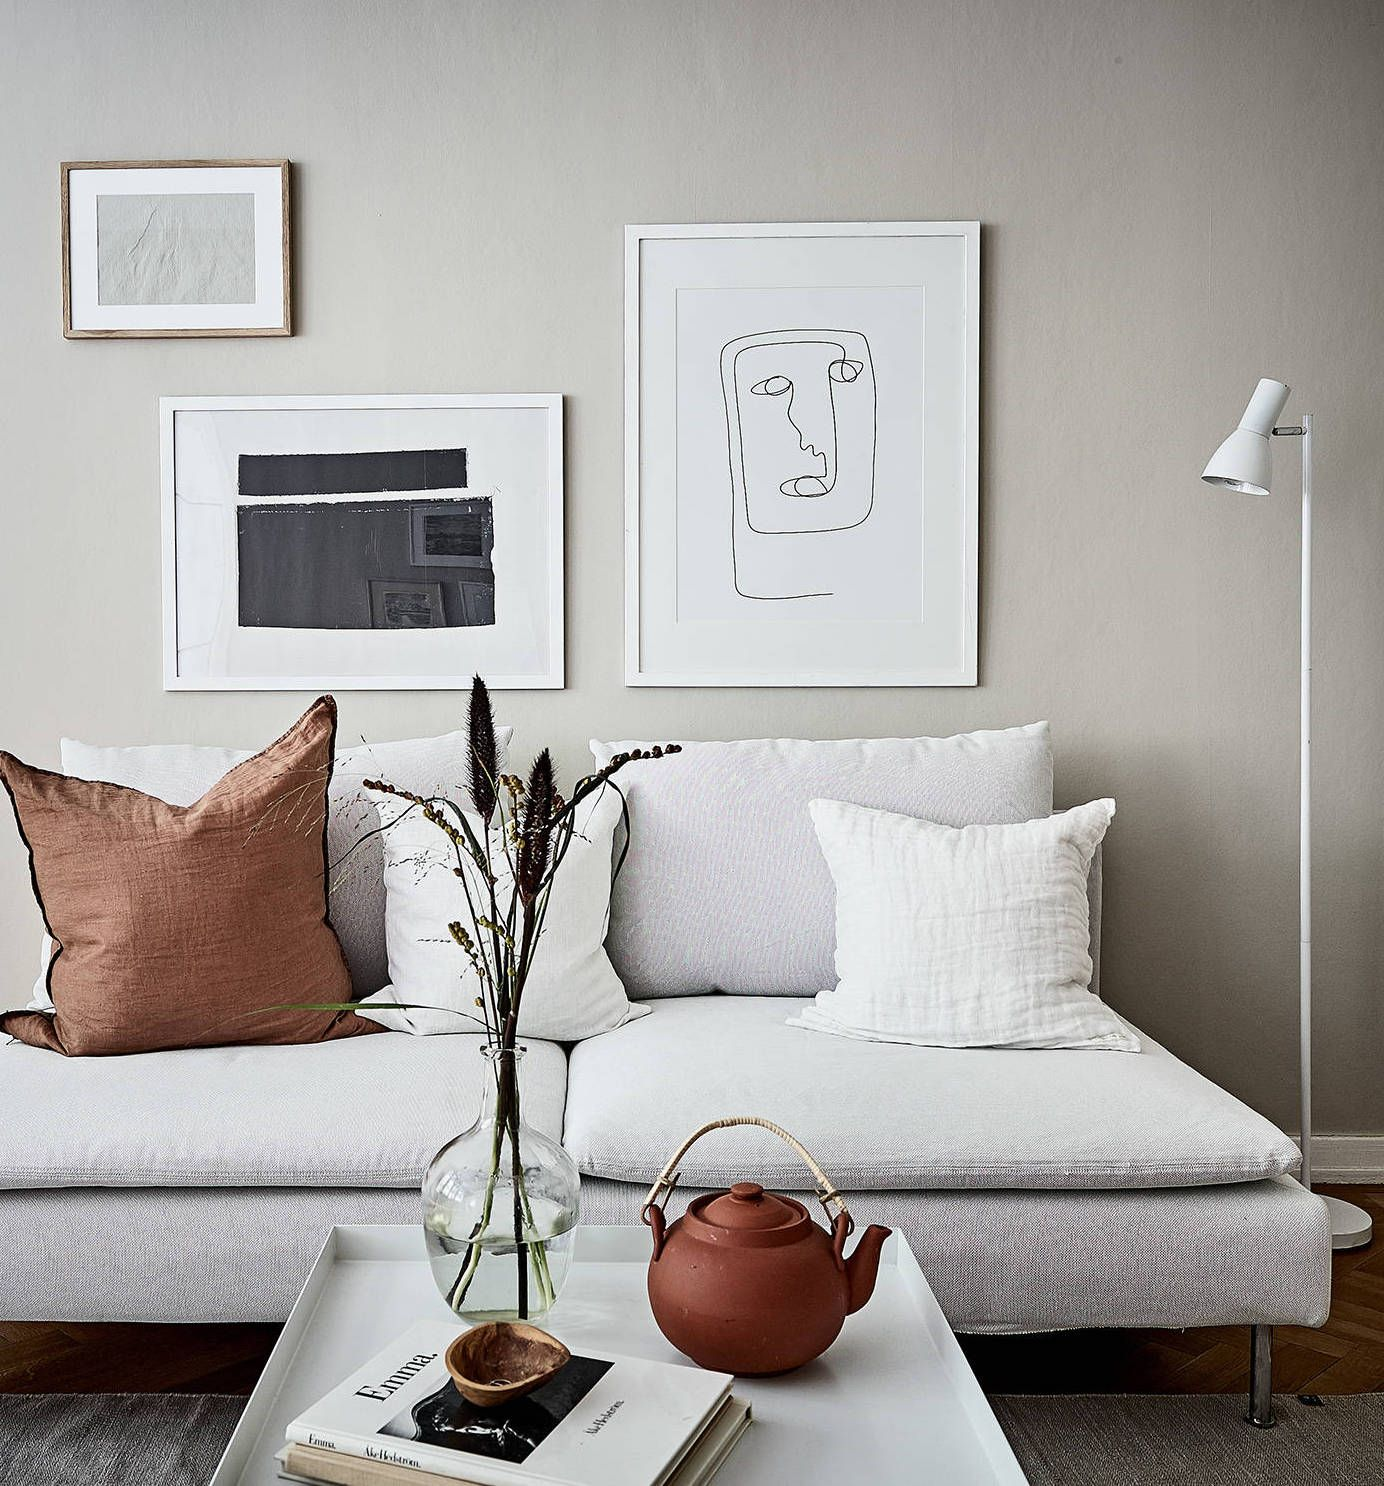 Minimal Home In Warm Colors   Via Coco Lapine Design Blog